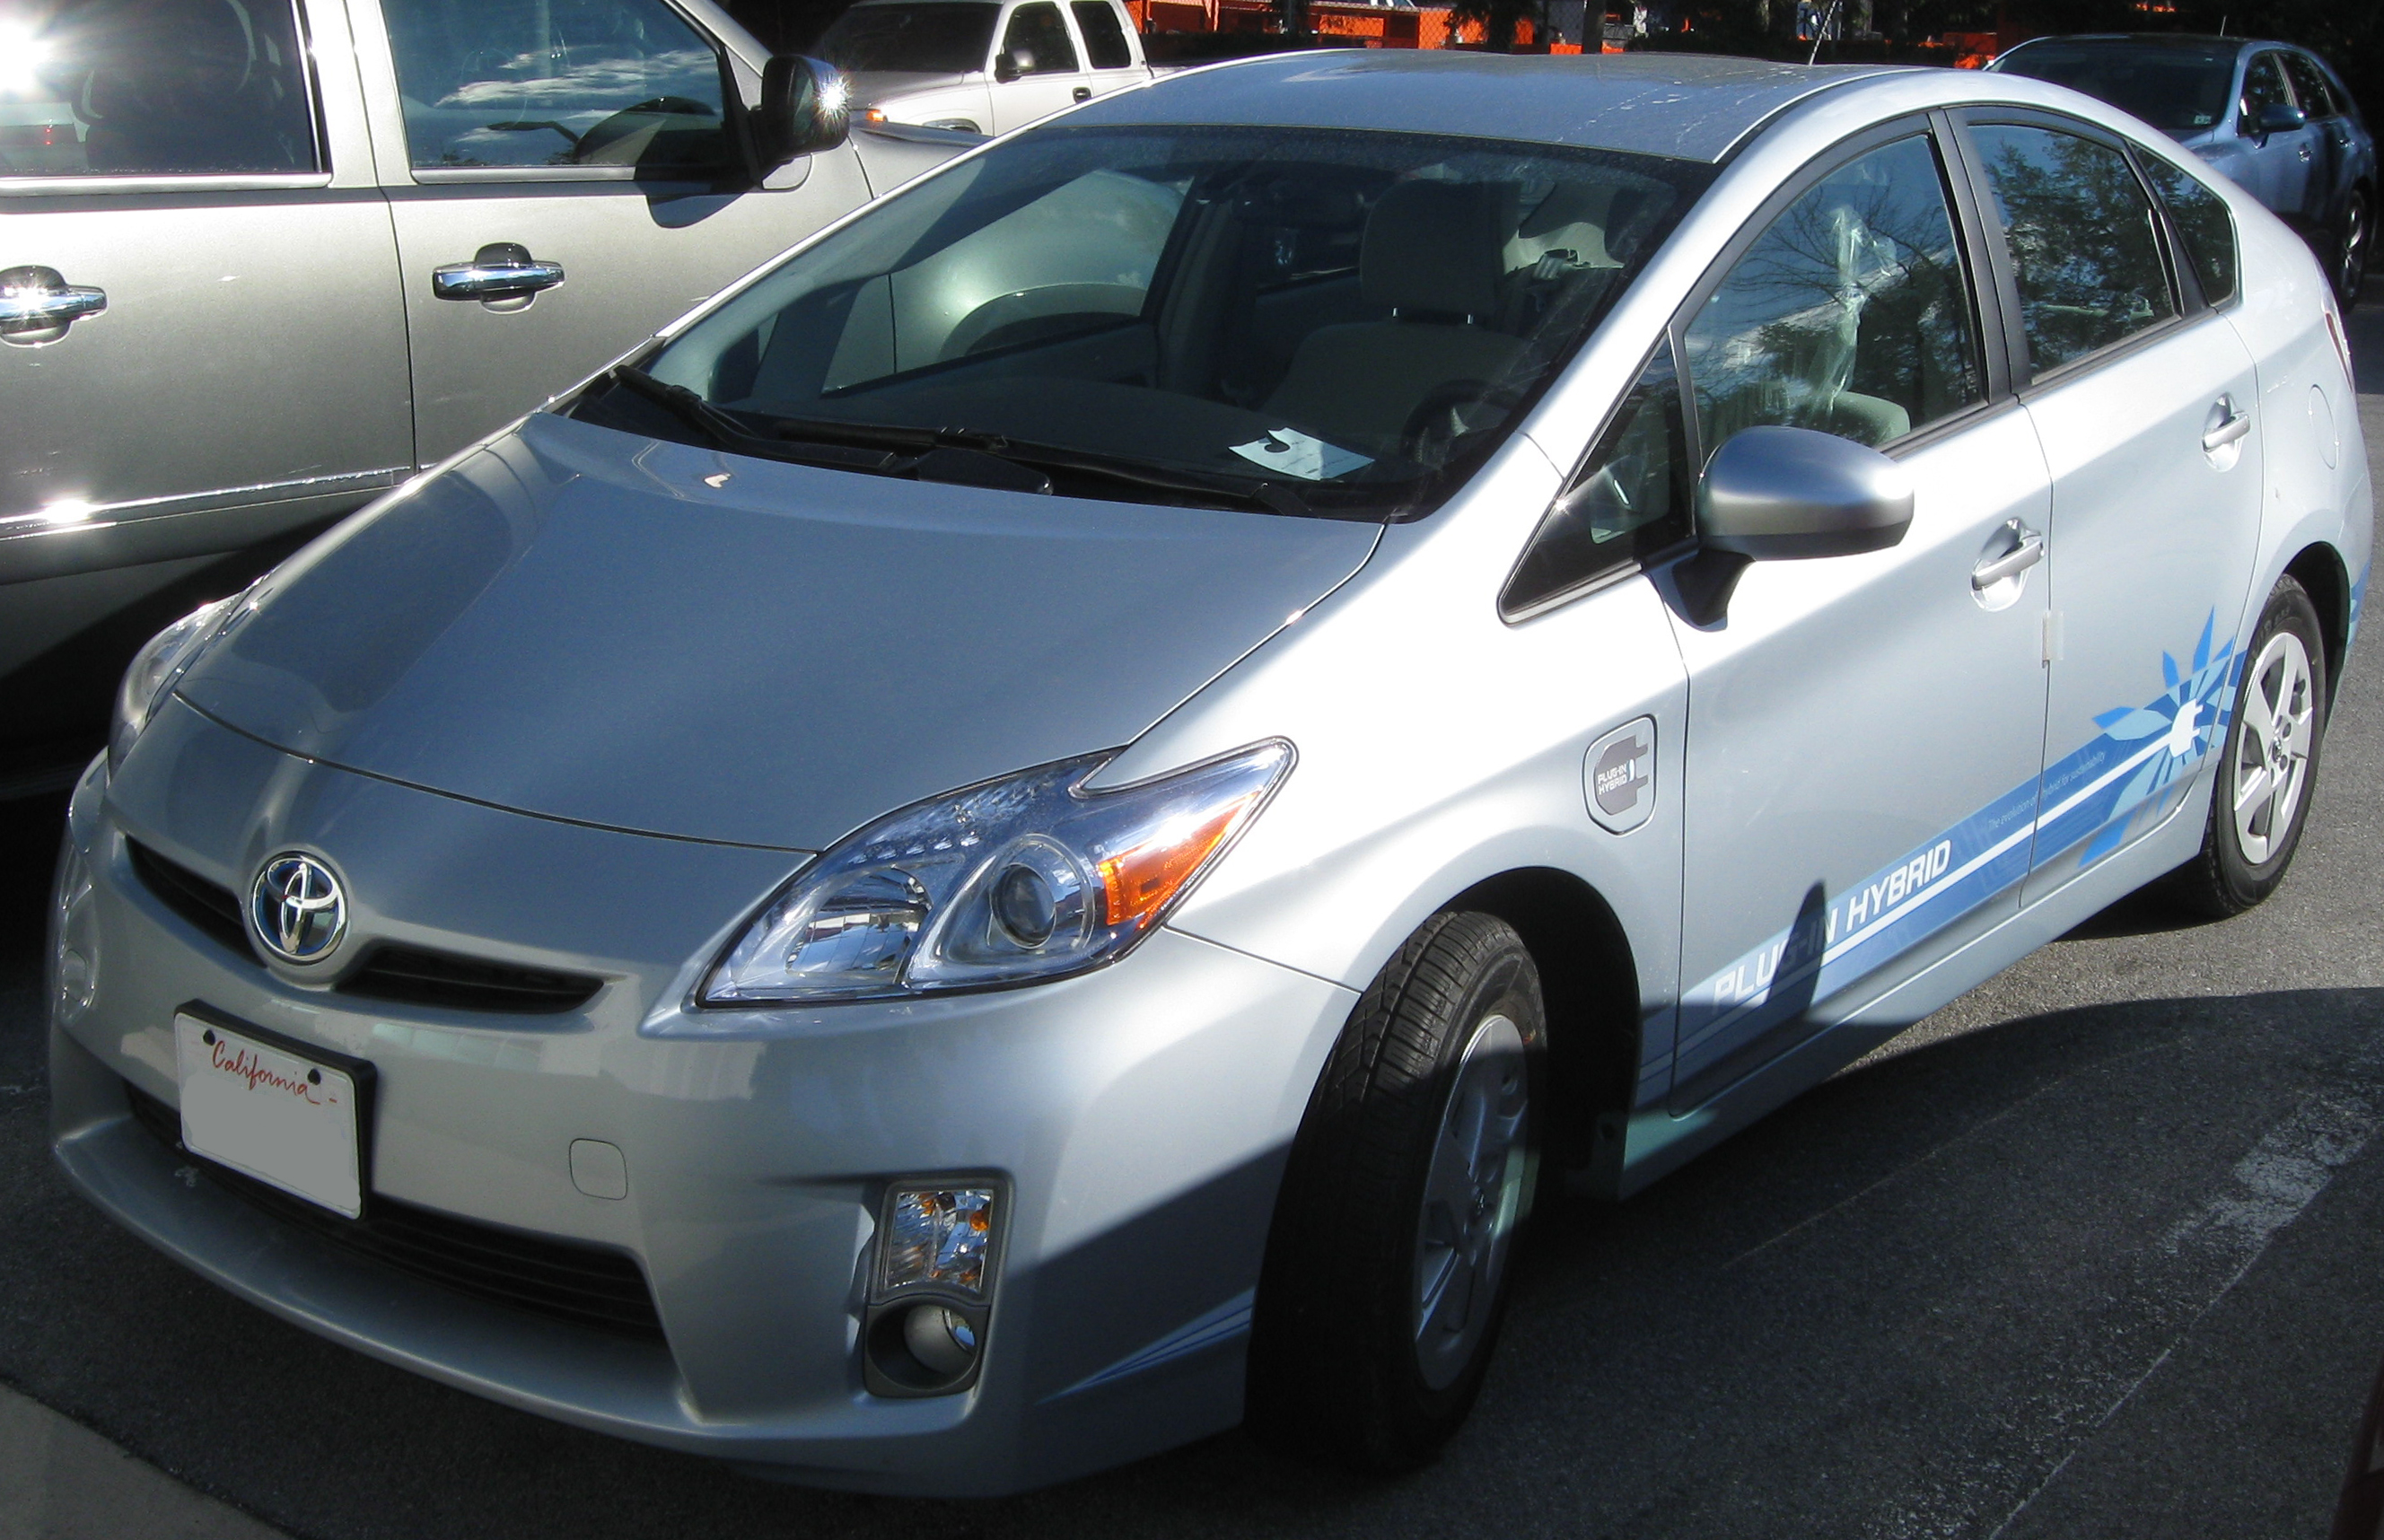 prius leading a wave of hybrids essay The 5th wave  we will write a cheap essay sample on the 5th wave specifically for you for only $1290/page prius: leading a wave of hybrids.